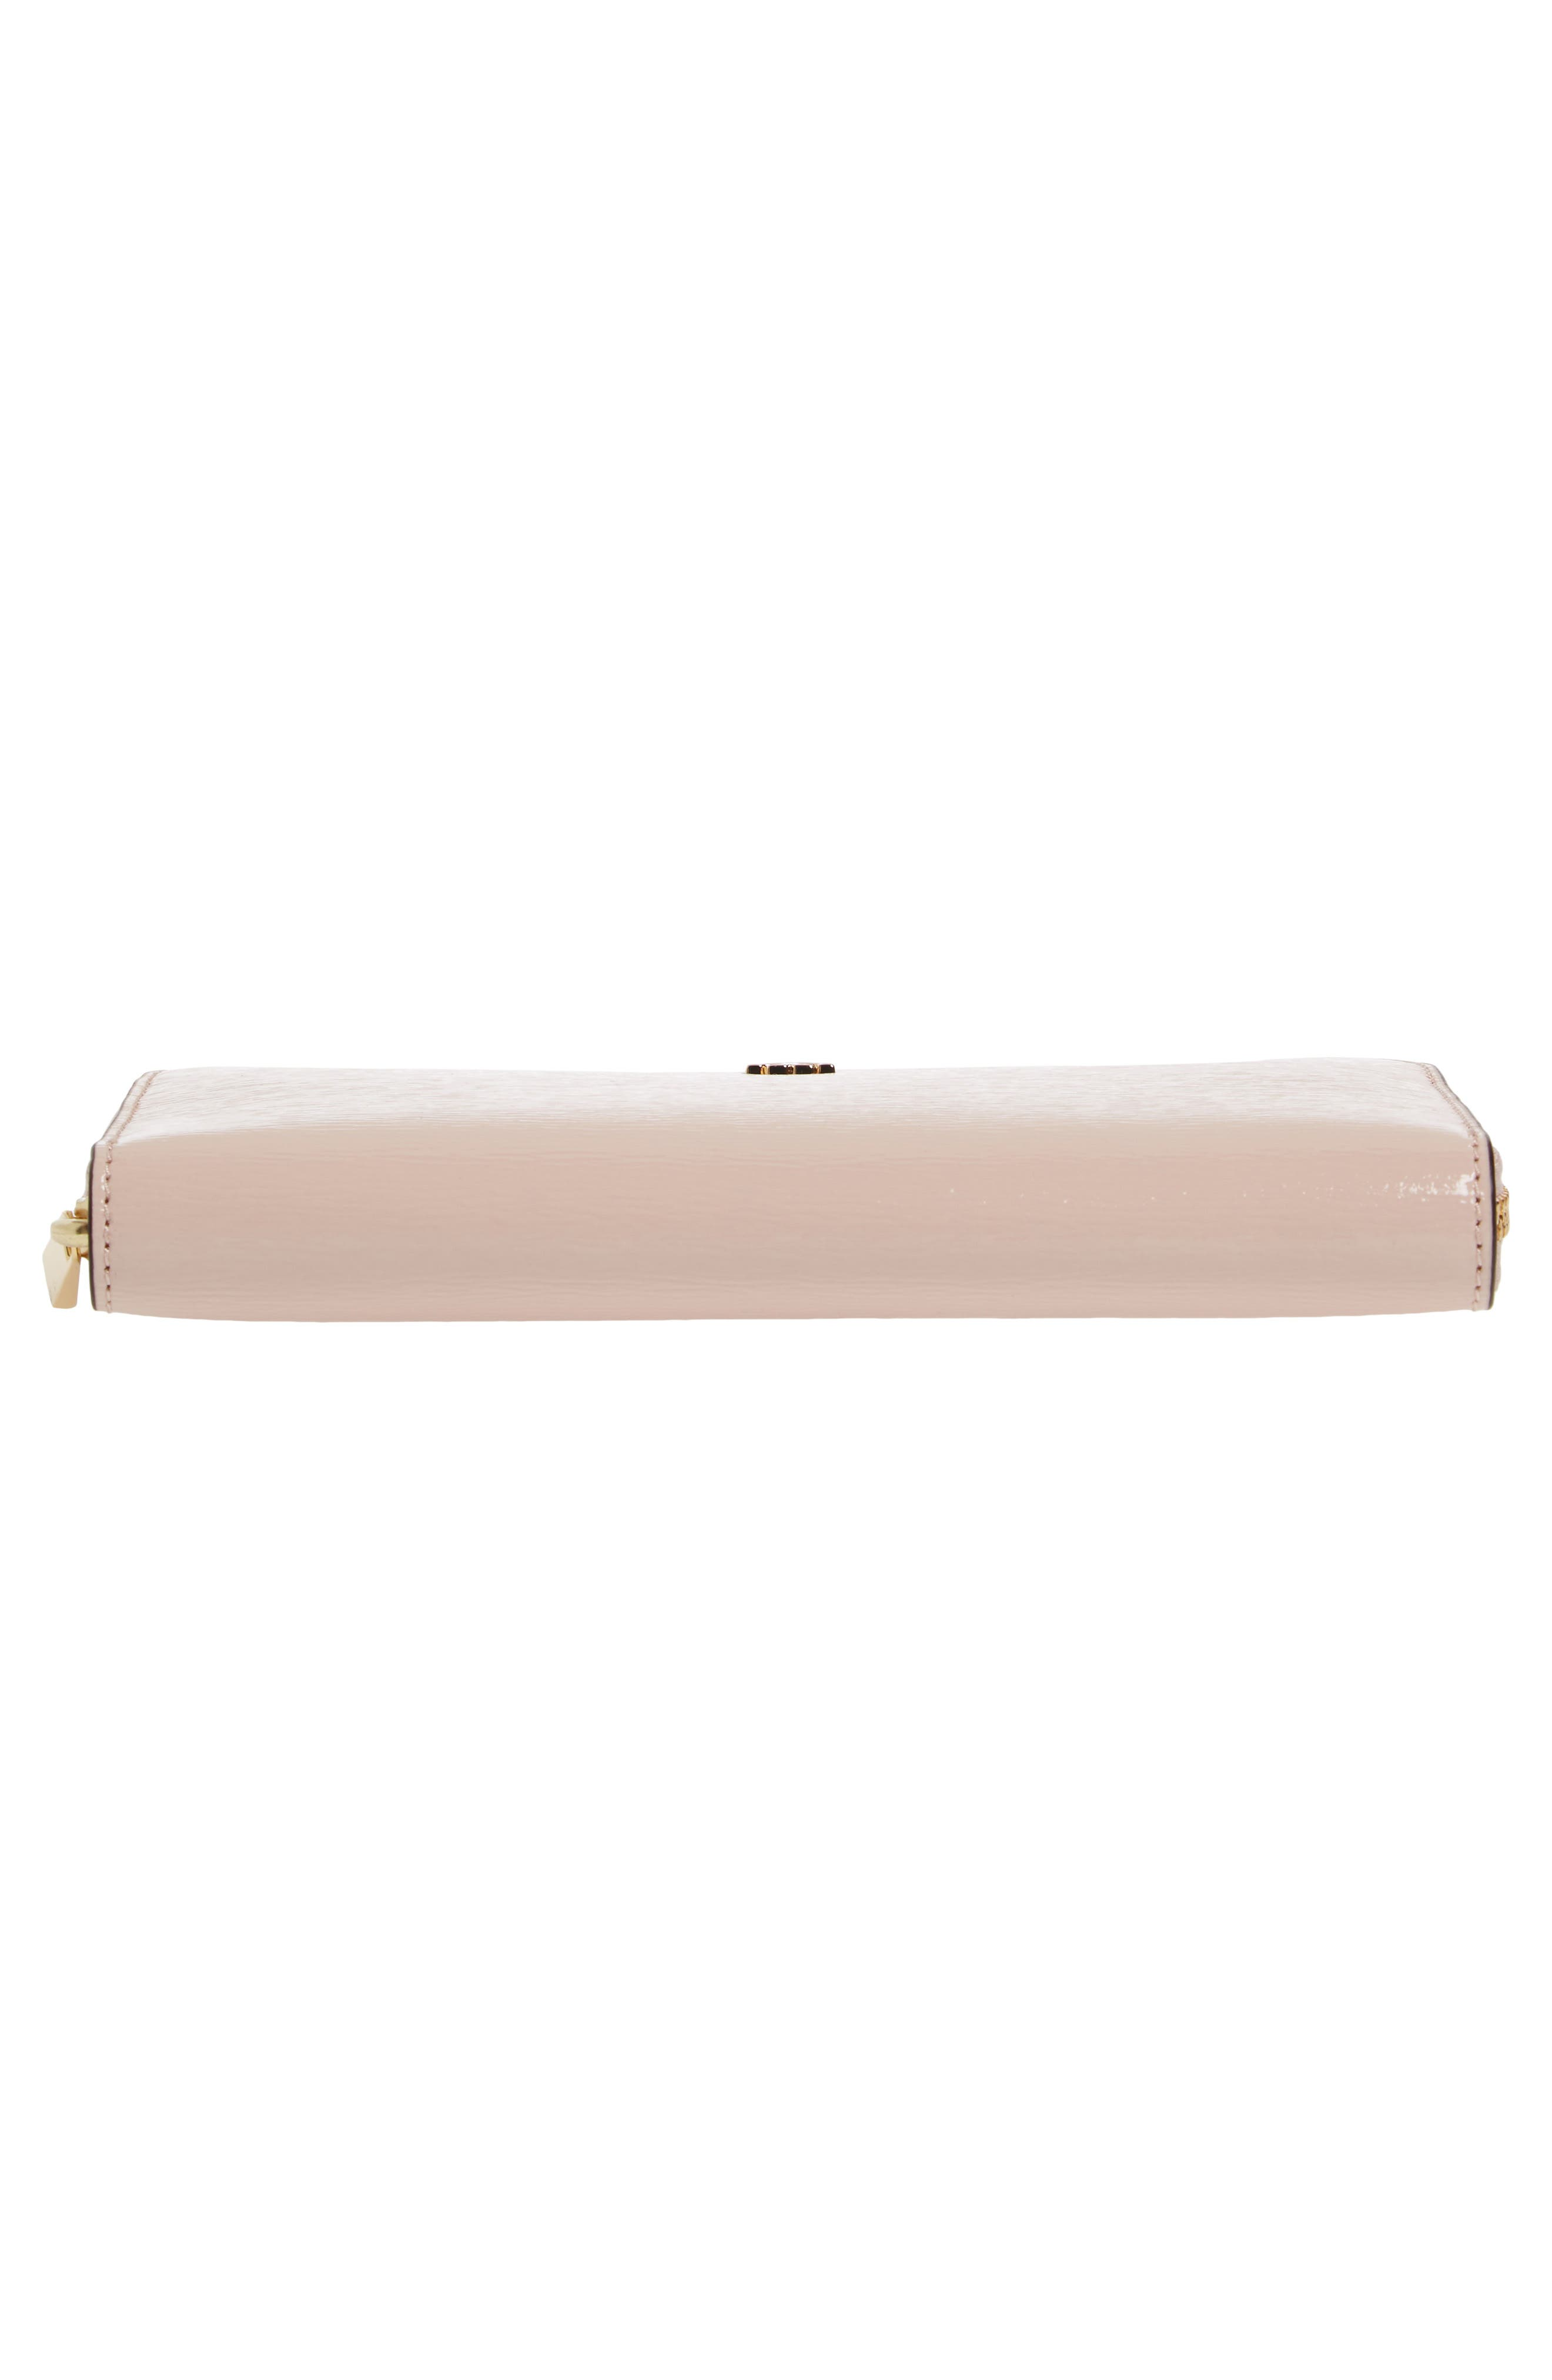 Robinson Patent Leather Continental Wallet,                             Alternate thumbnail 5, color,                             Shell Pink